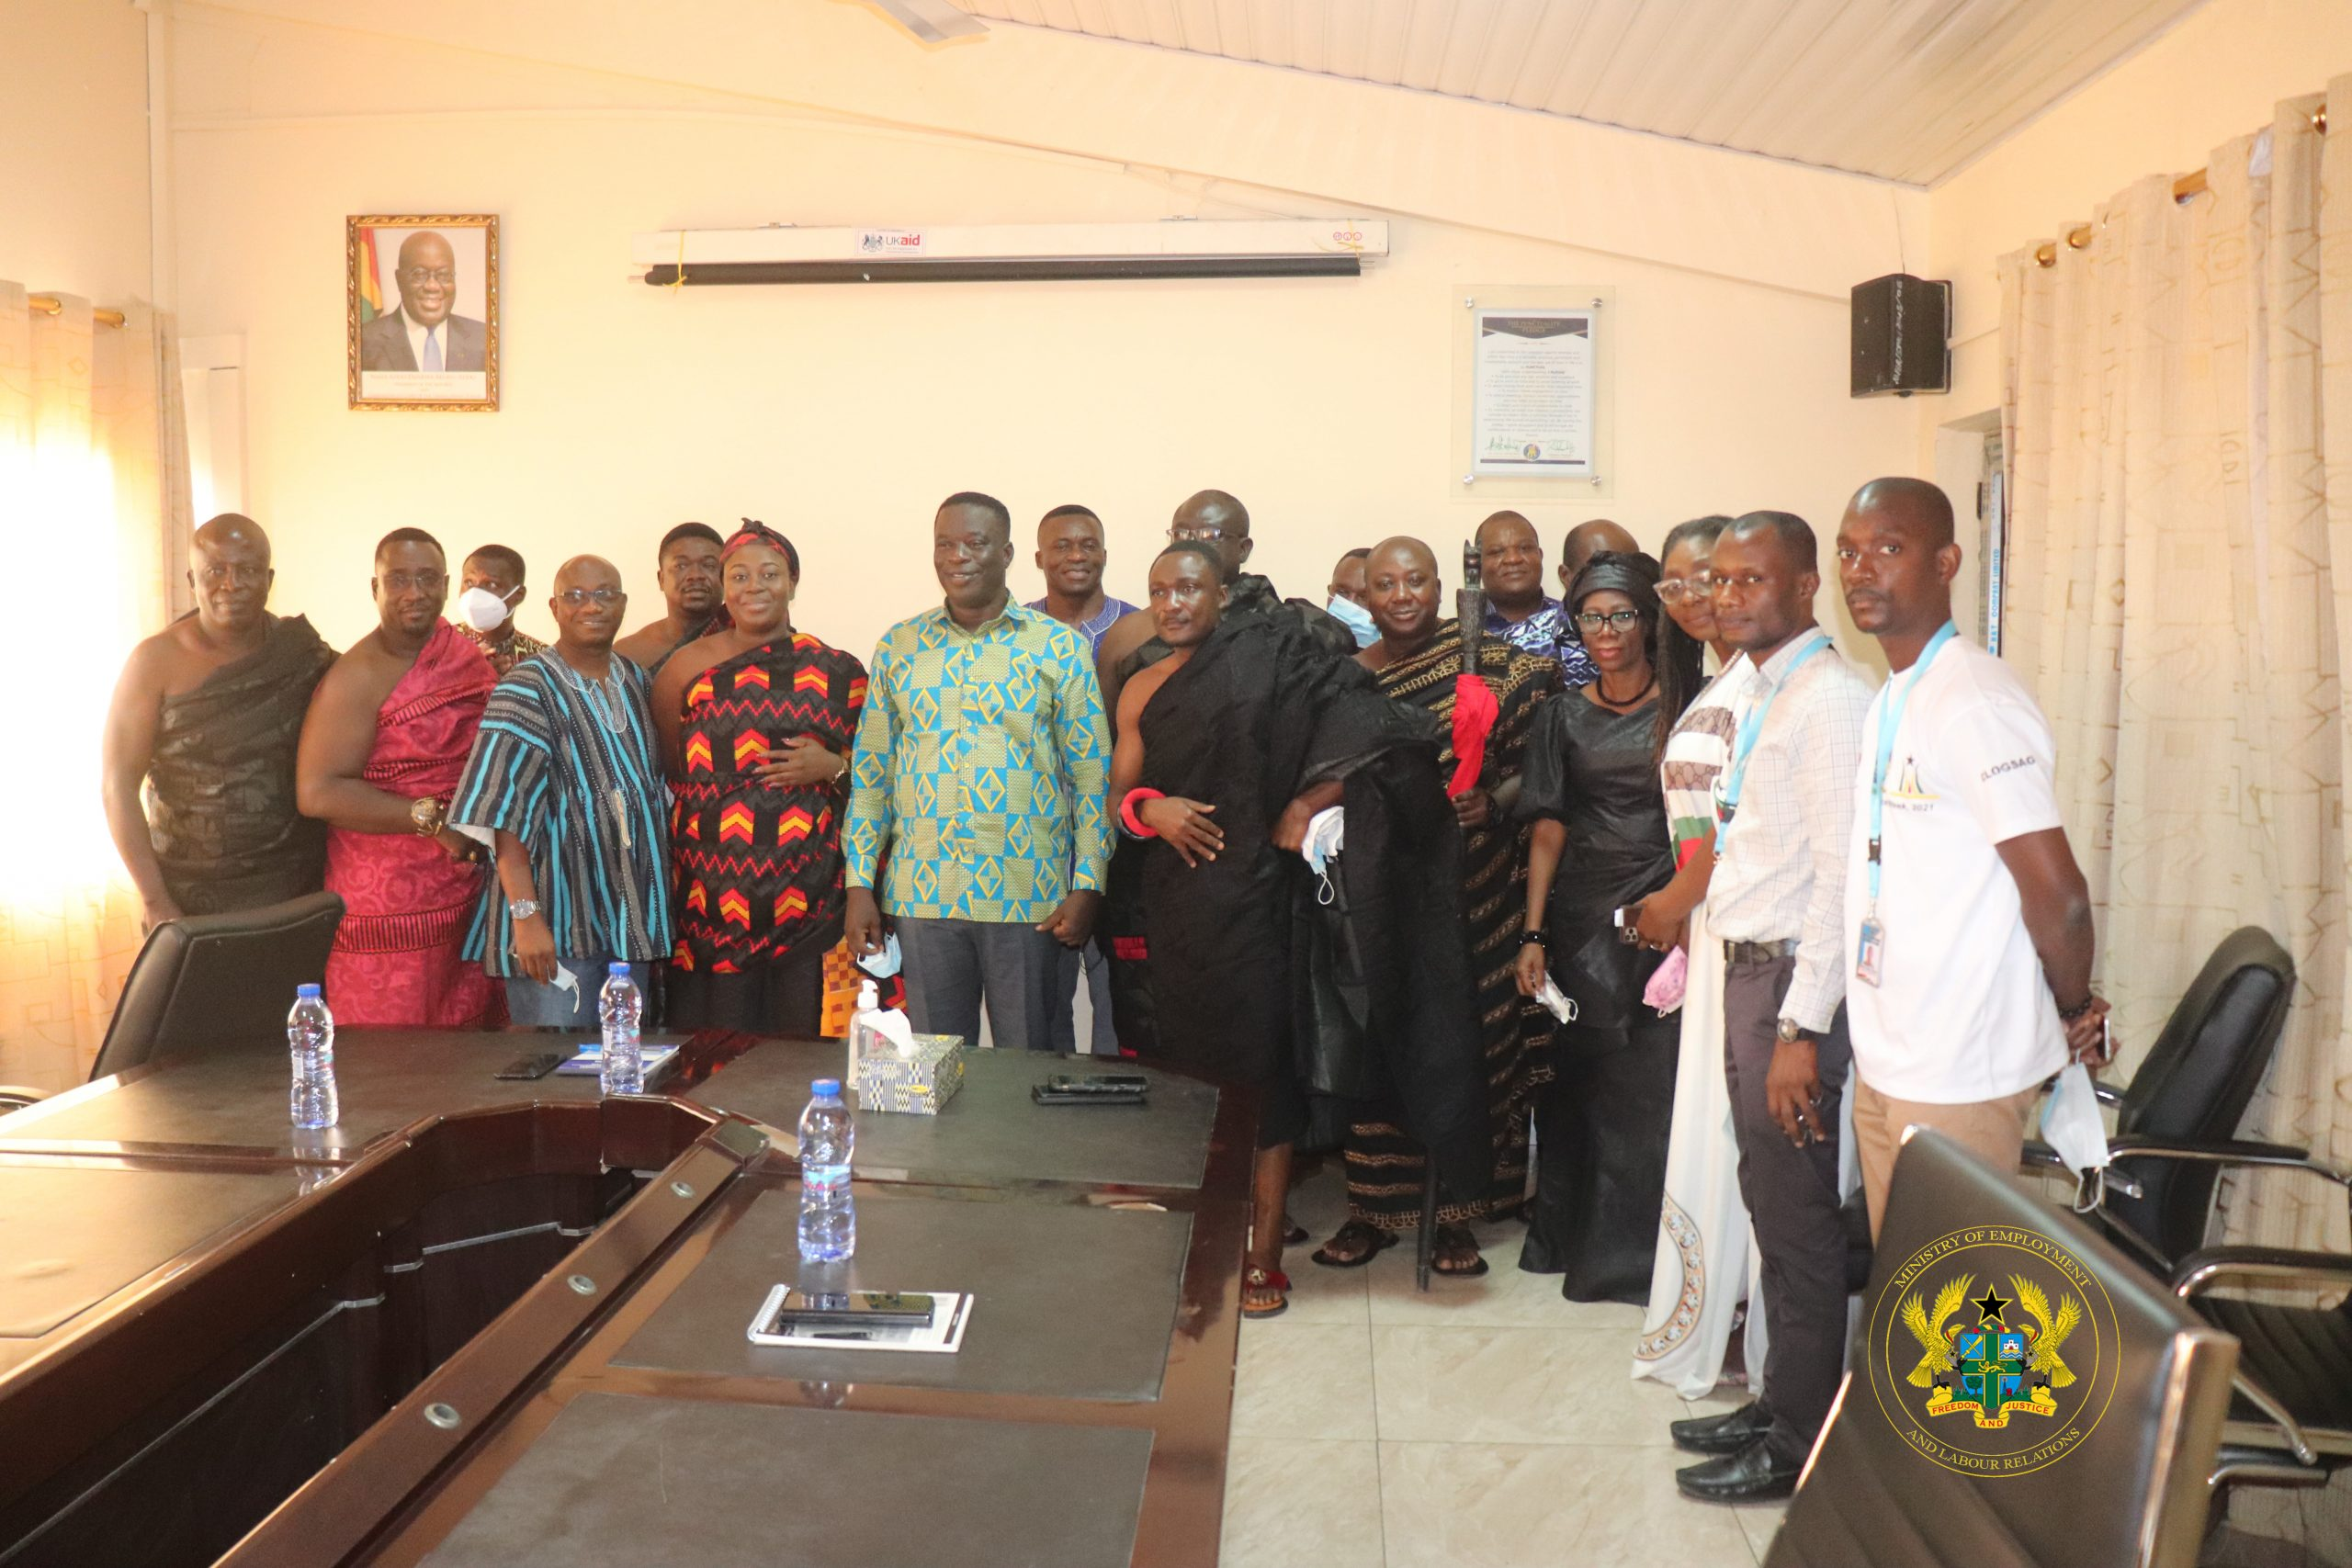 AKWAMU TRADITIONAL COUNCIL PAYS COURTESY CALL ON HONOURABLE MINISTER